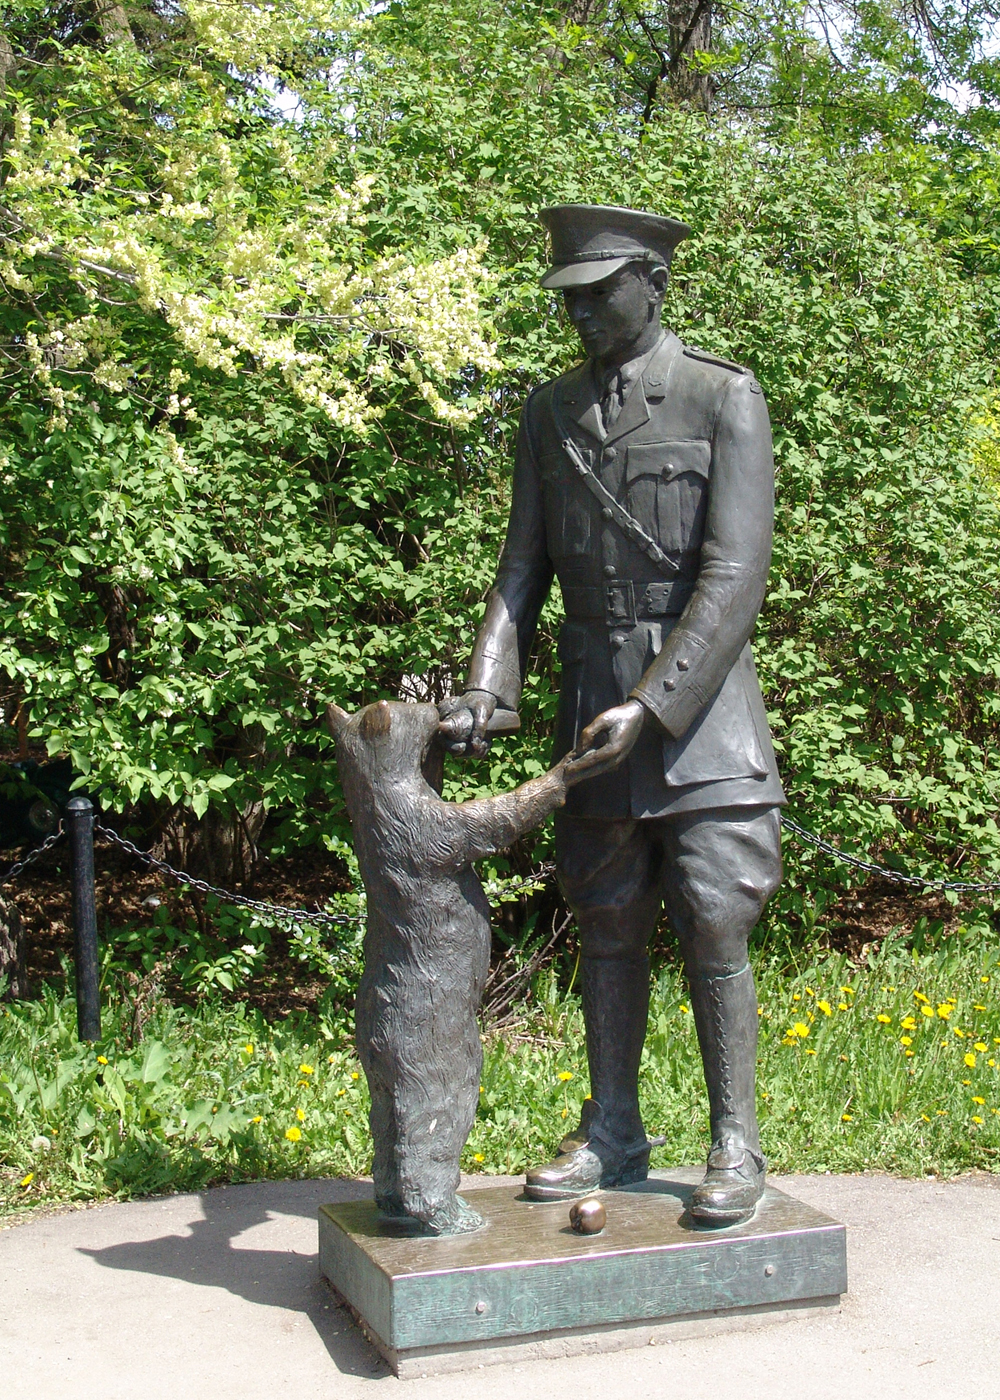 Winnie the Bear and Lieutenant Harry Colebourn statue in Assiniboine Park Zoo